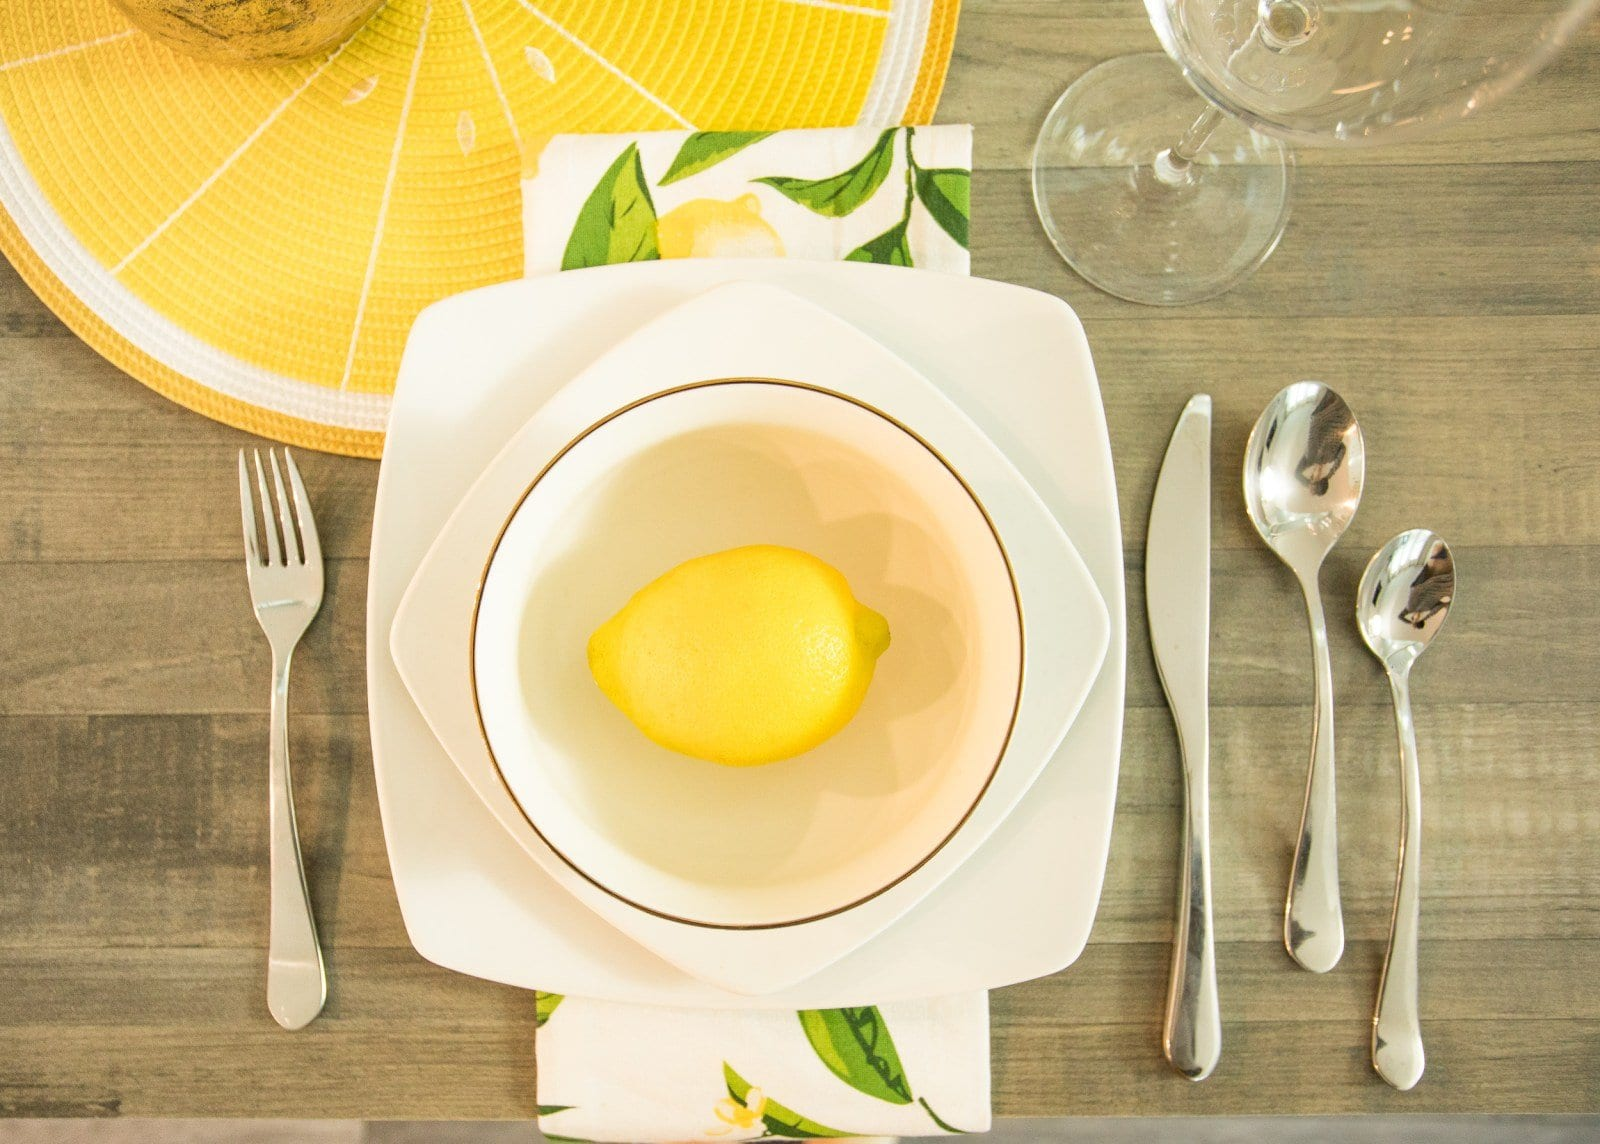 This tablescape checklist will give you tablescapes ideas for how to create dinner party table settings  | never skip brunch by cara newhart #home #decor #neverskipbrunch